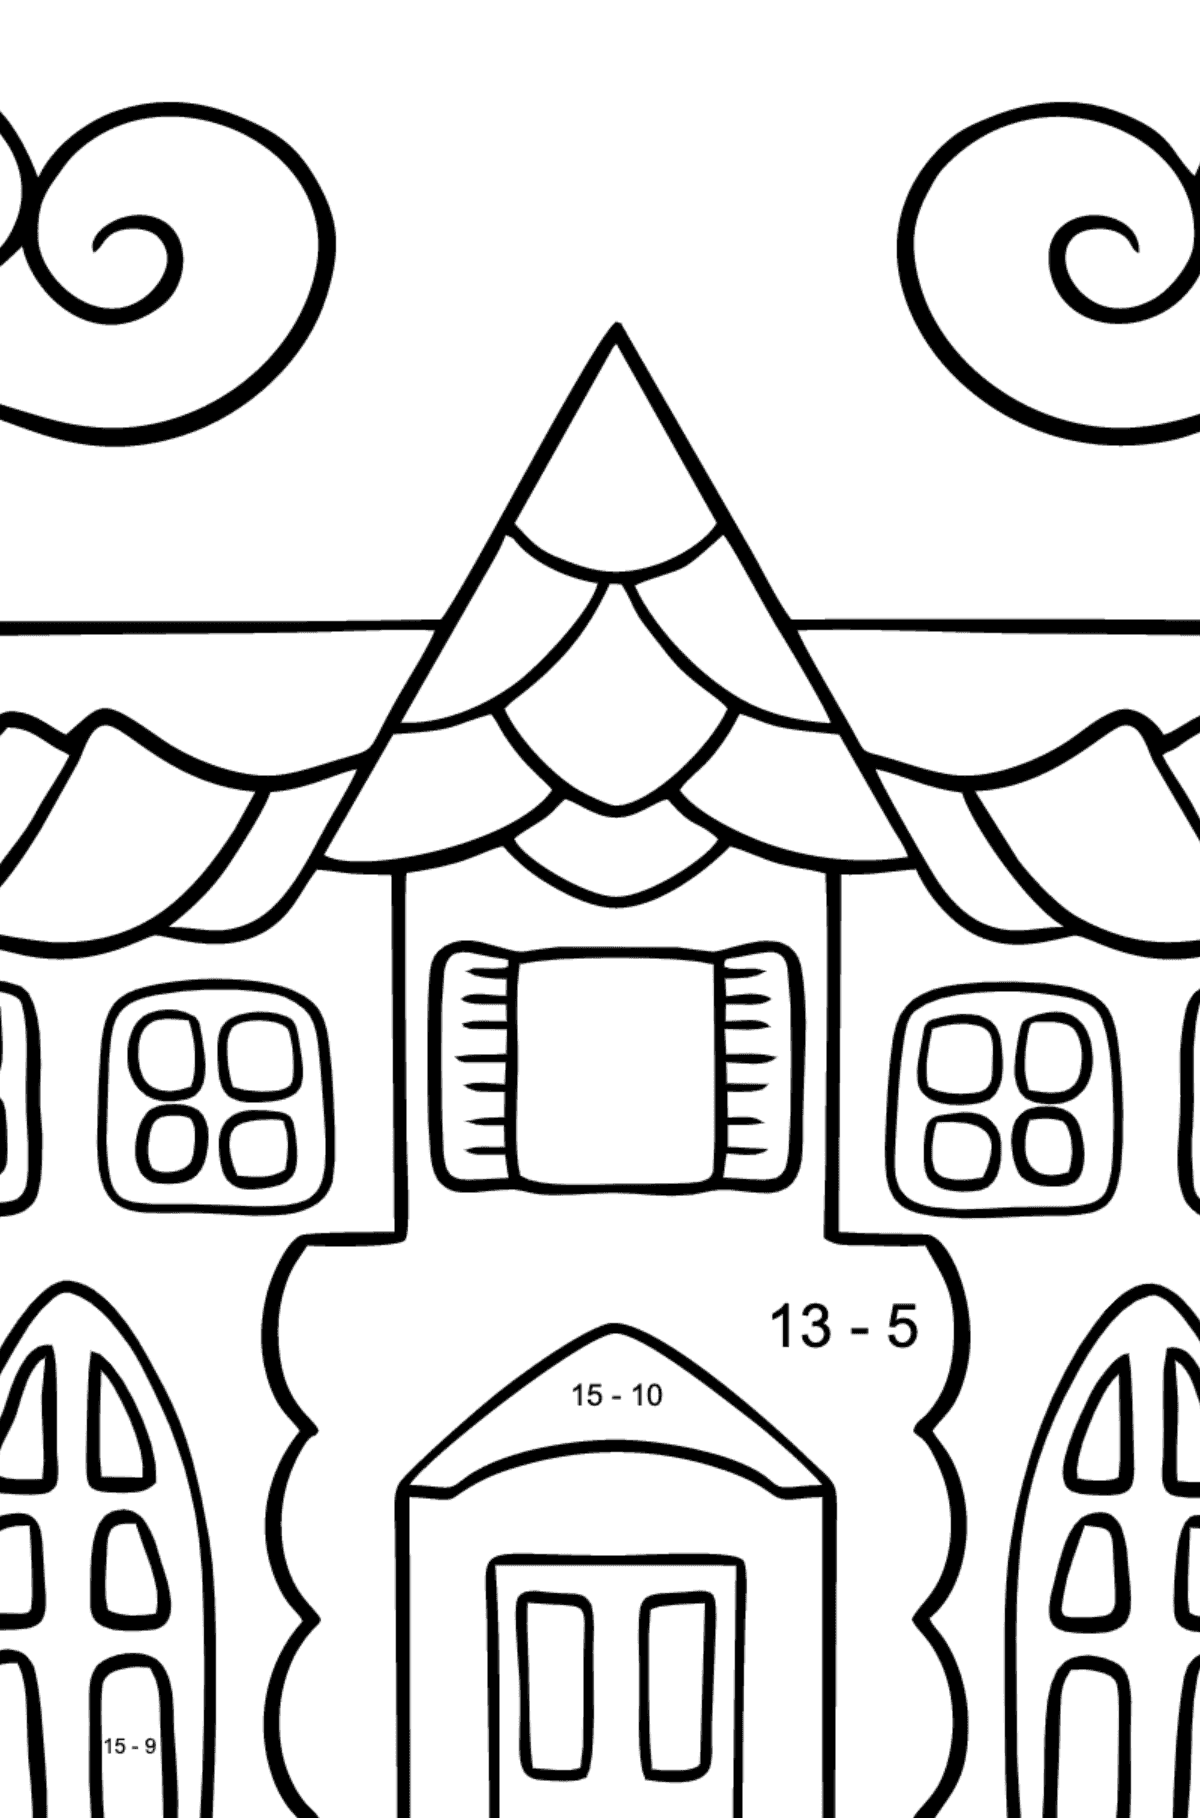 Simple Coloring Page - A House in an Enchanted Kingdom for Children  - Color by Number Substraction